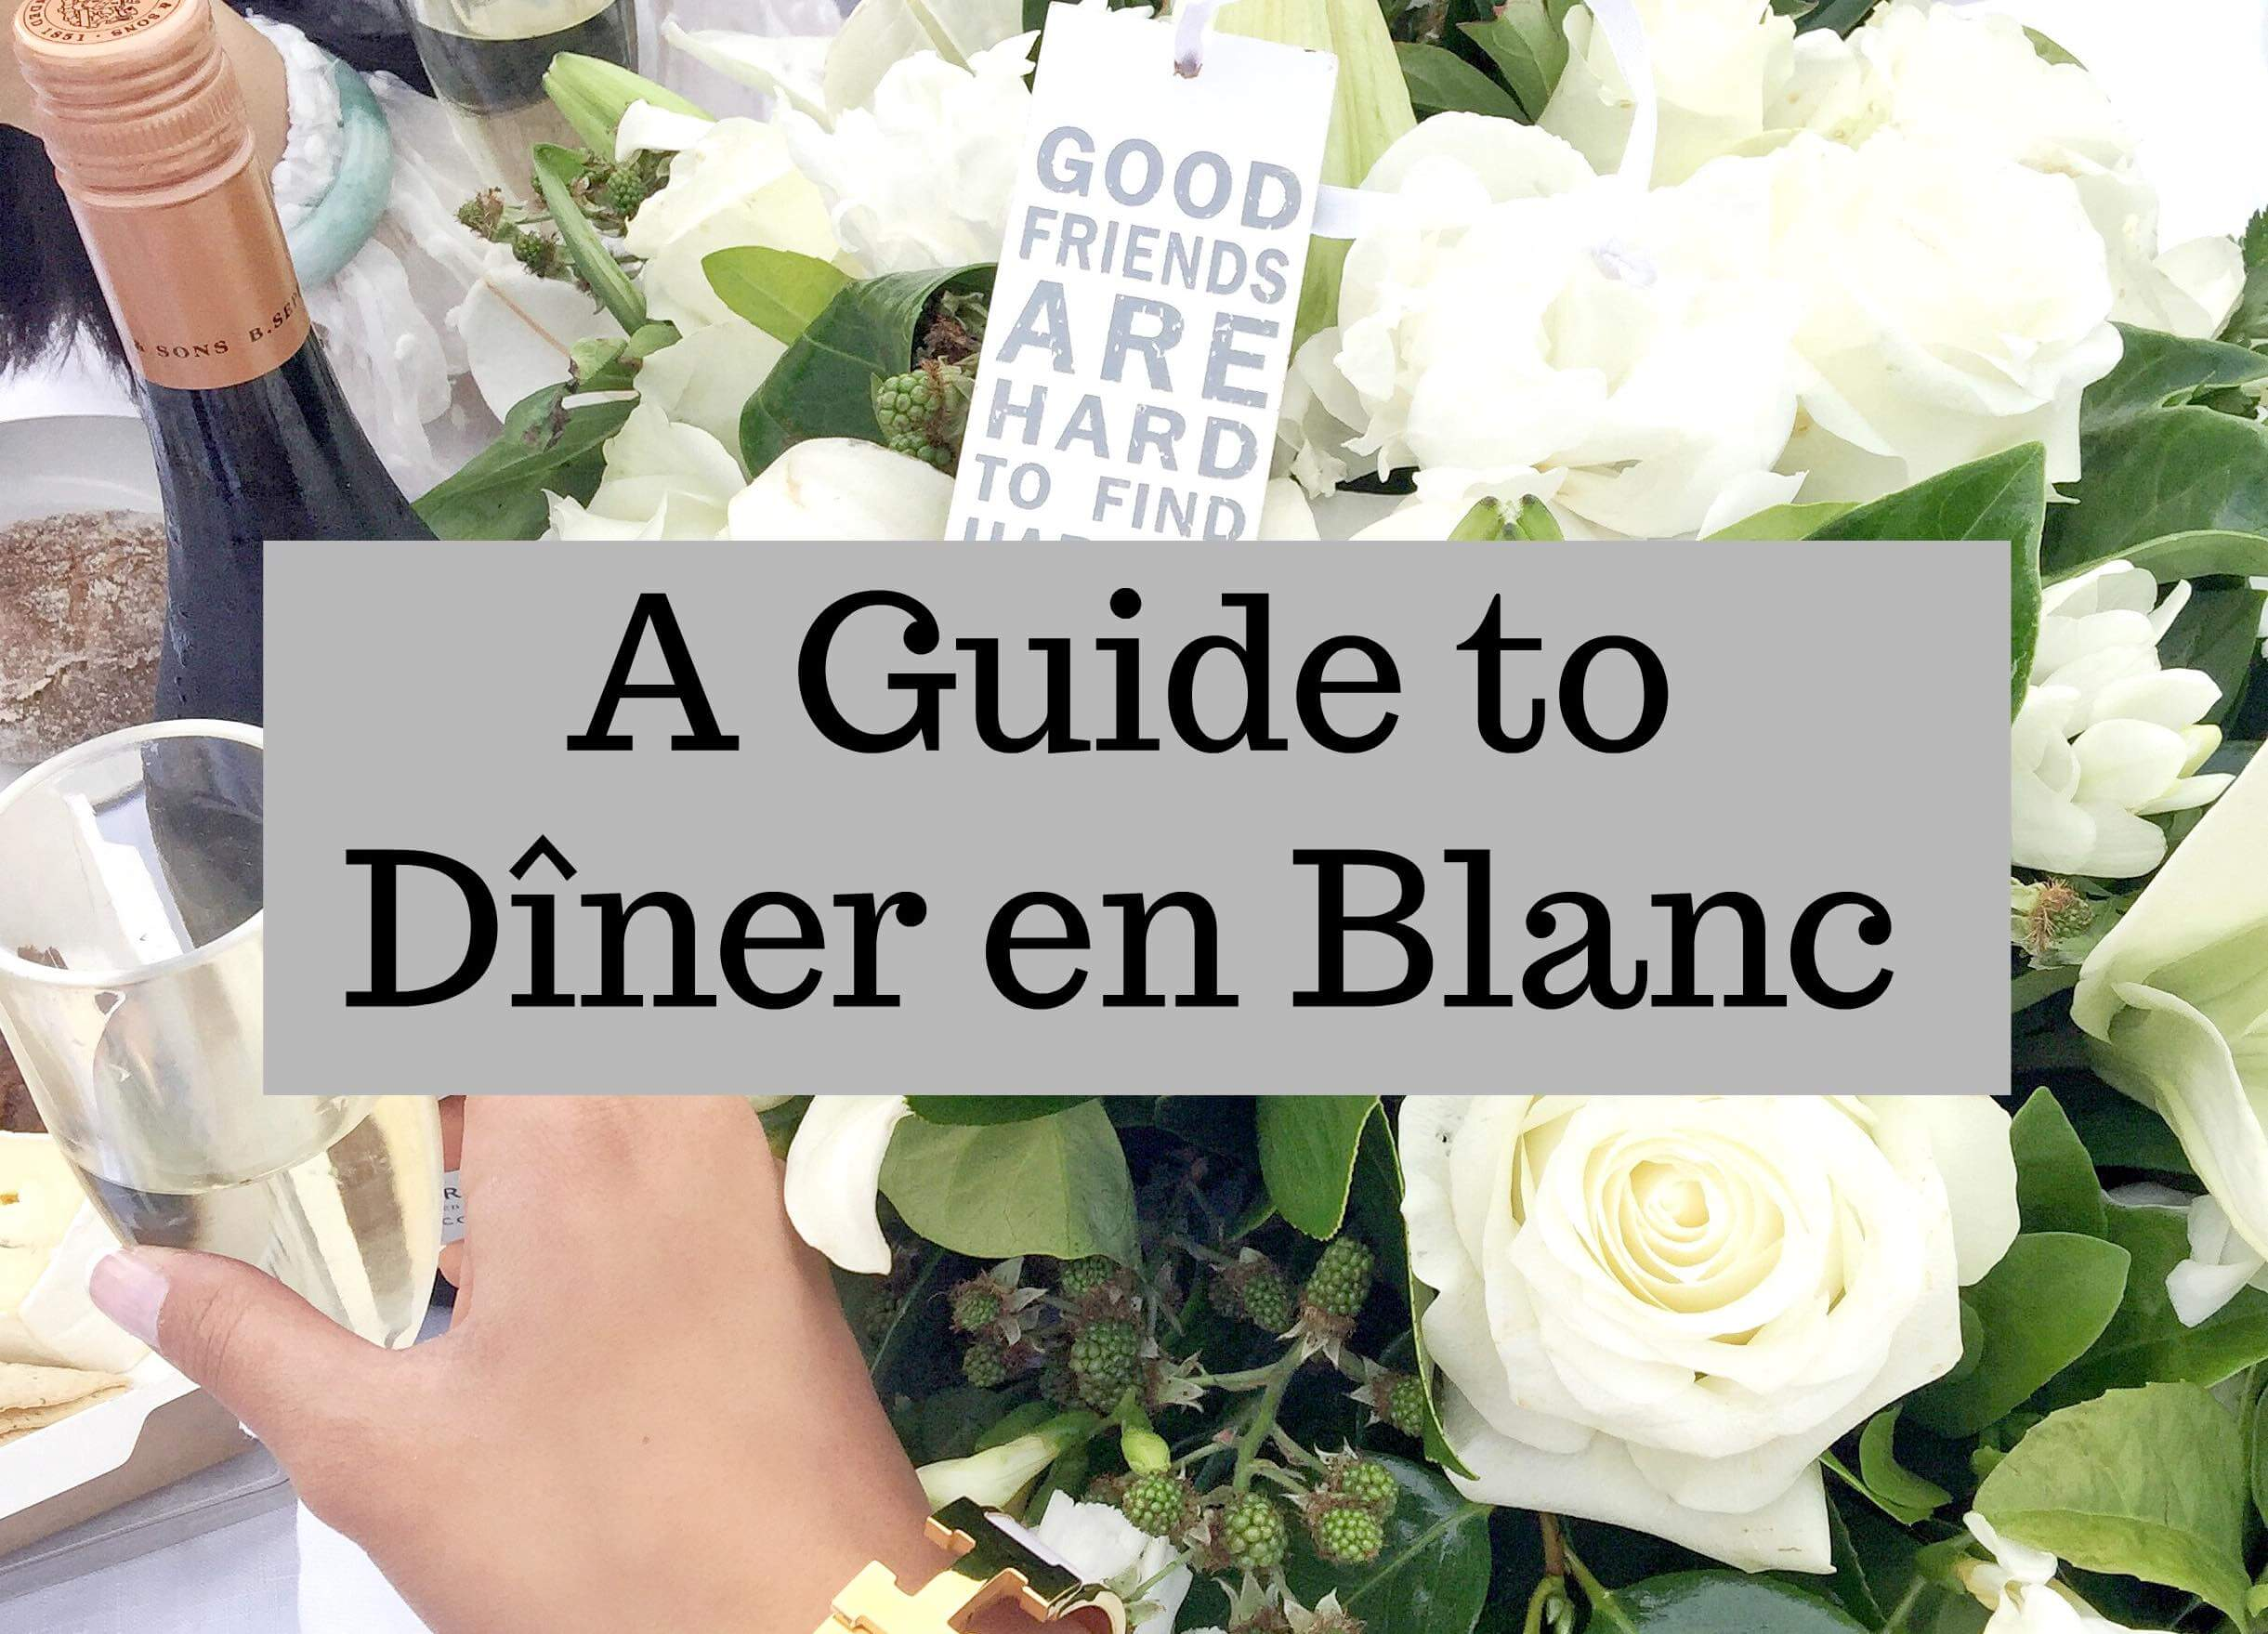 A Guide to Diner en Blanc